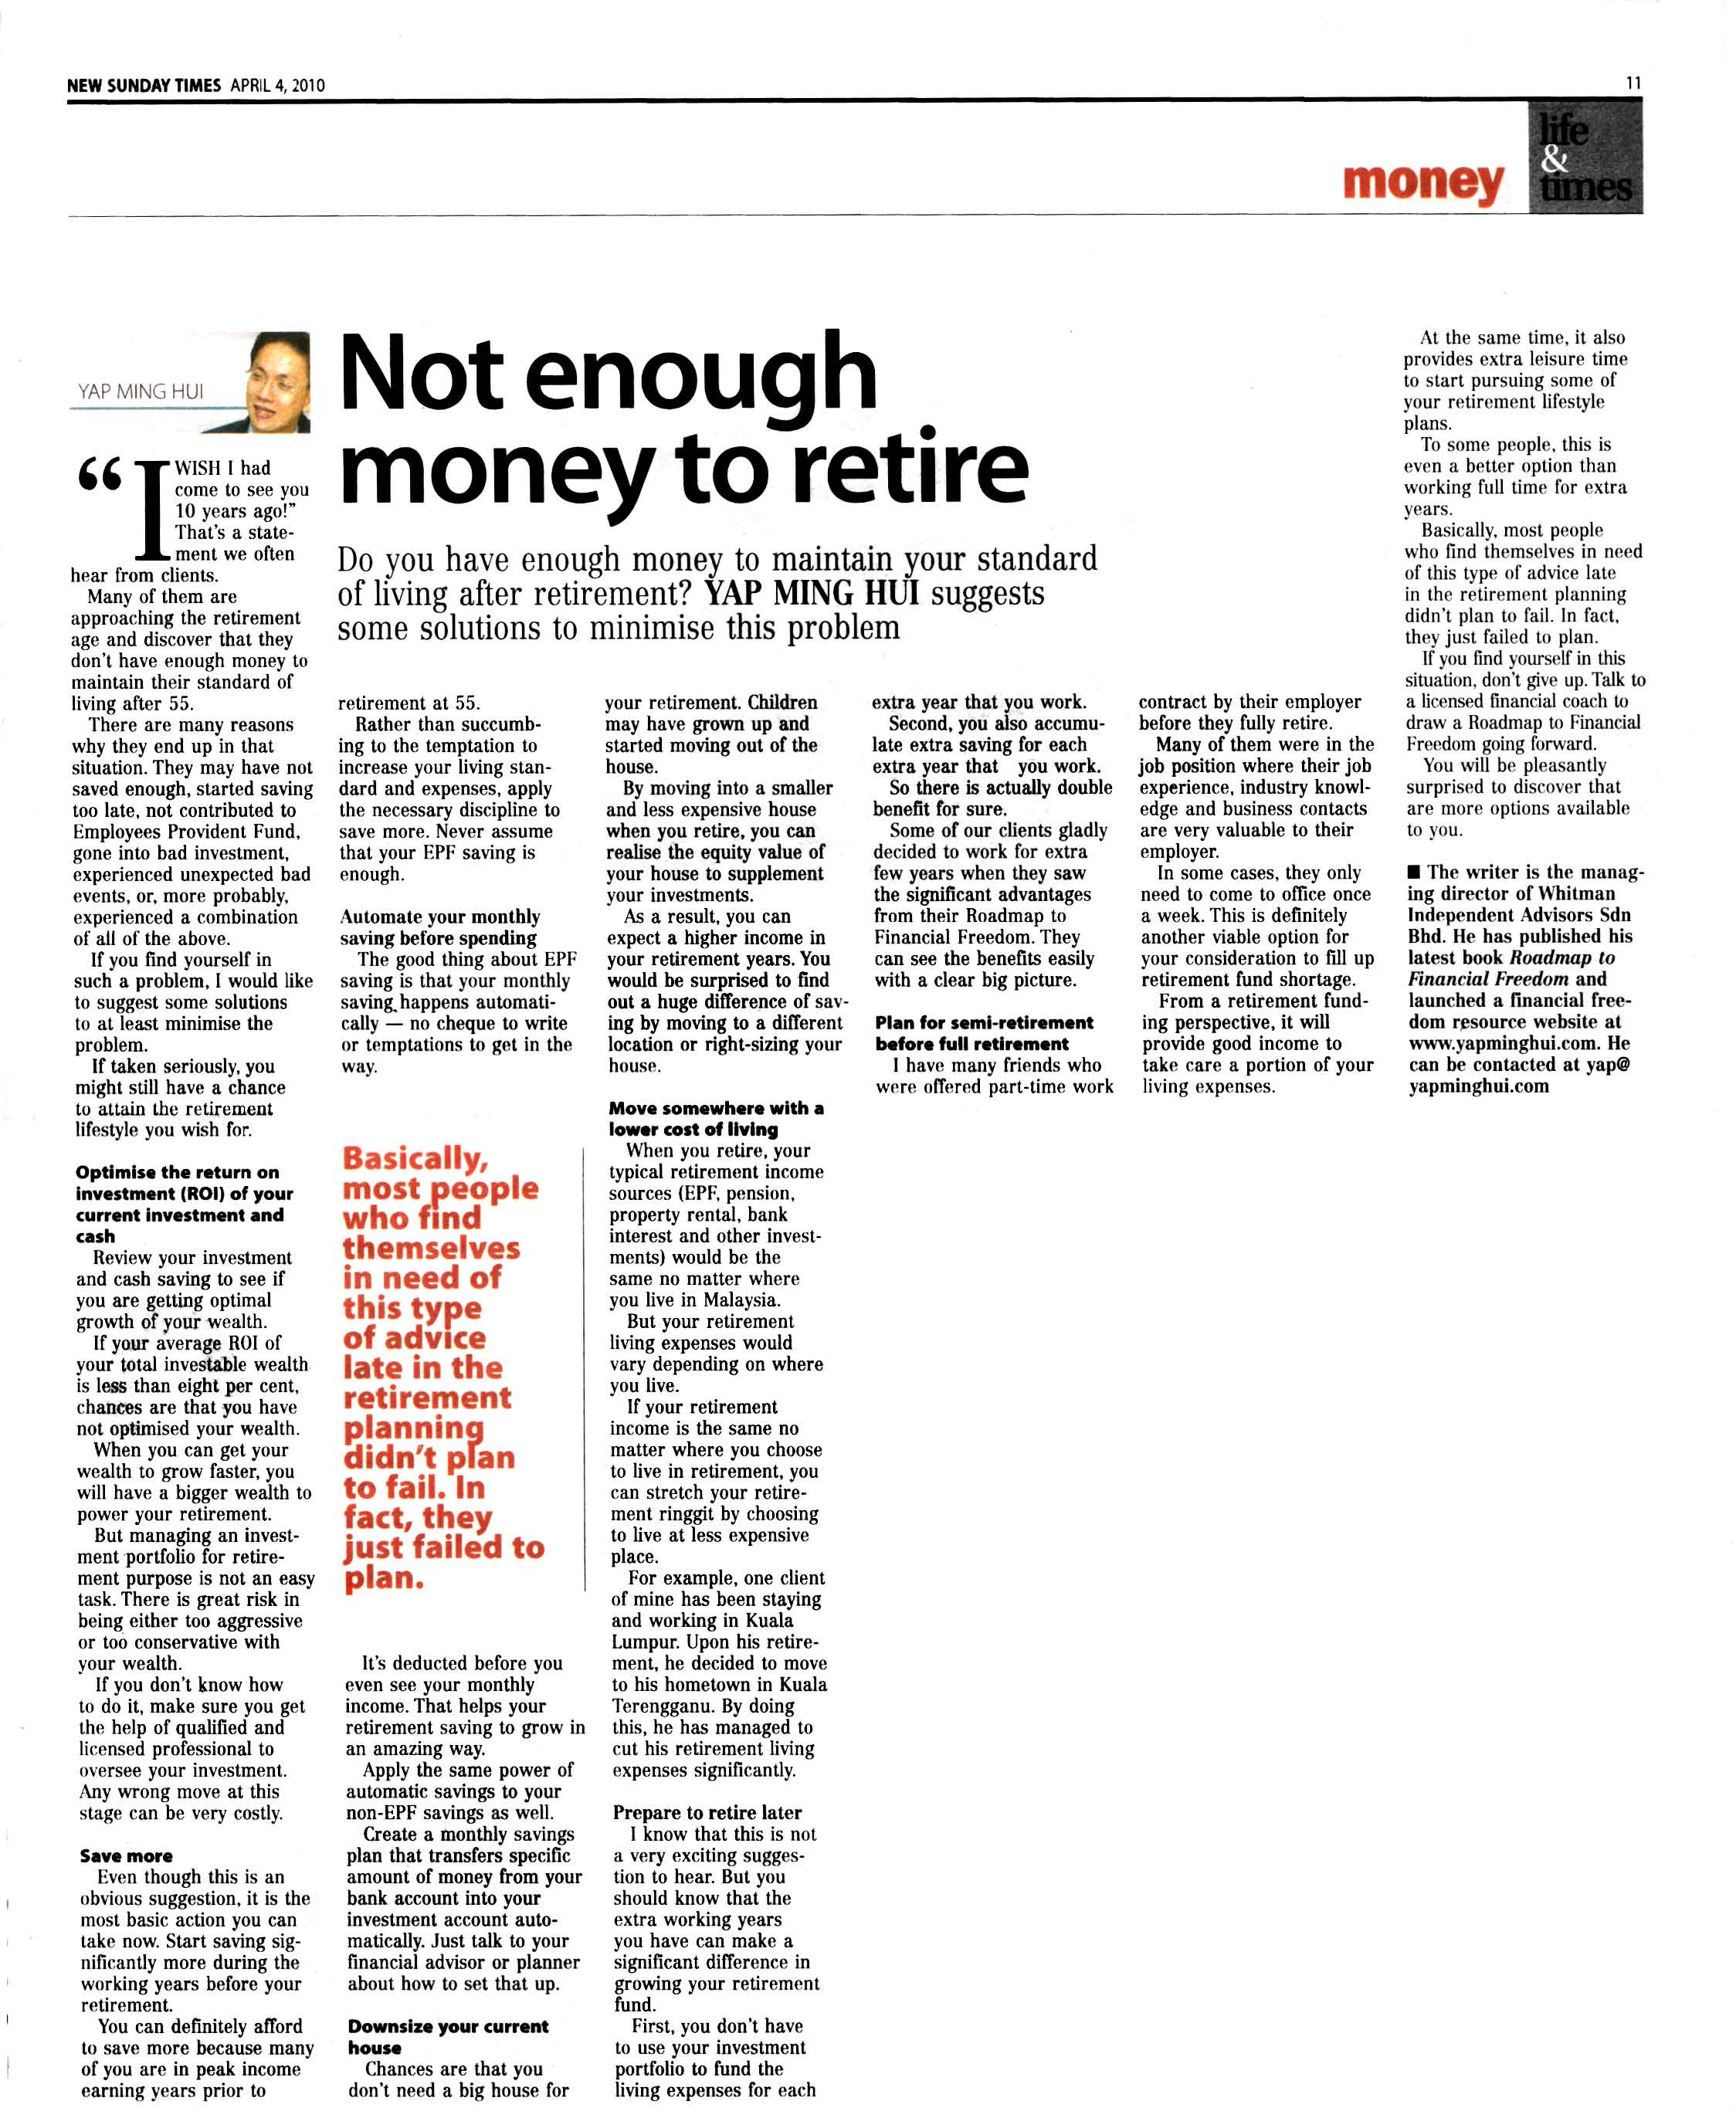 Not enough money to retire (New Sunday Times) - 04 Apr 2010